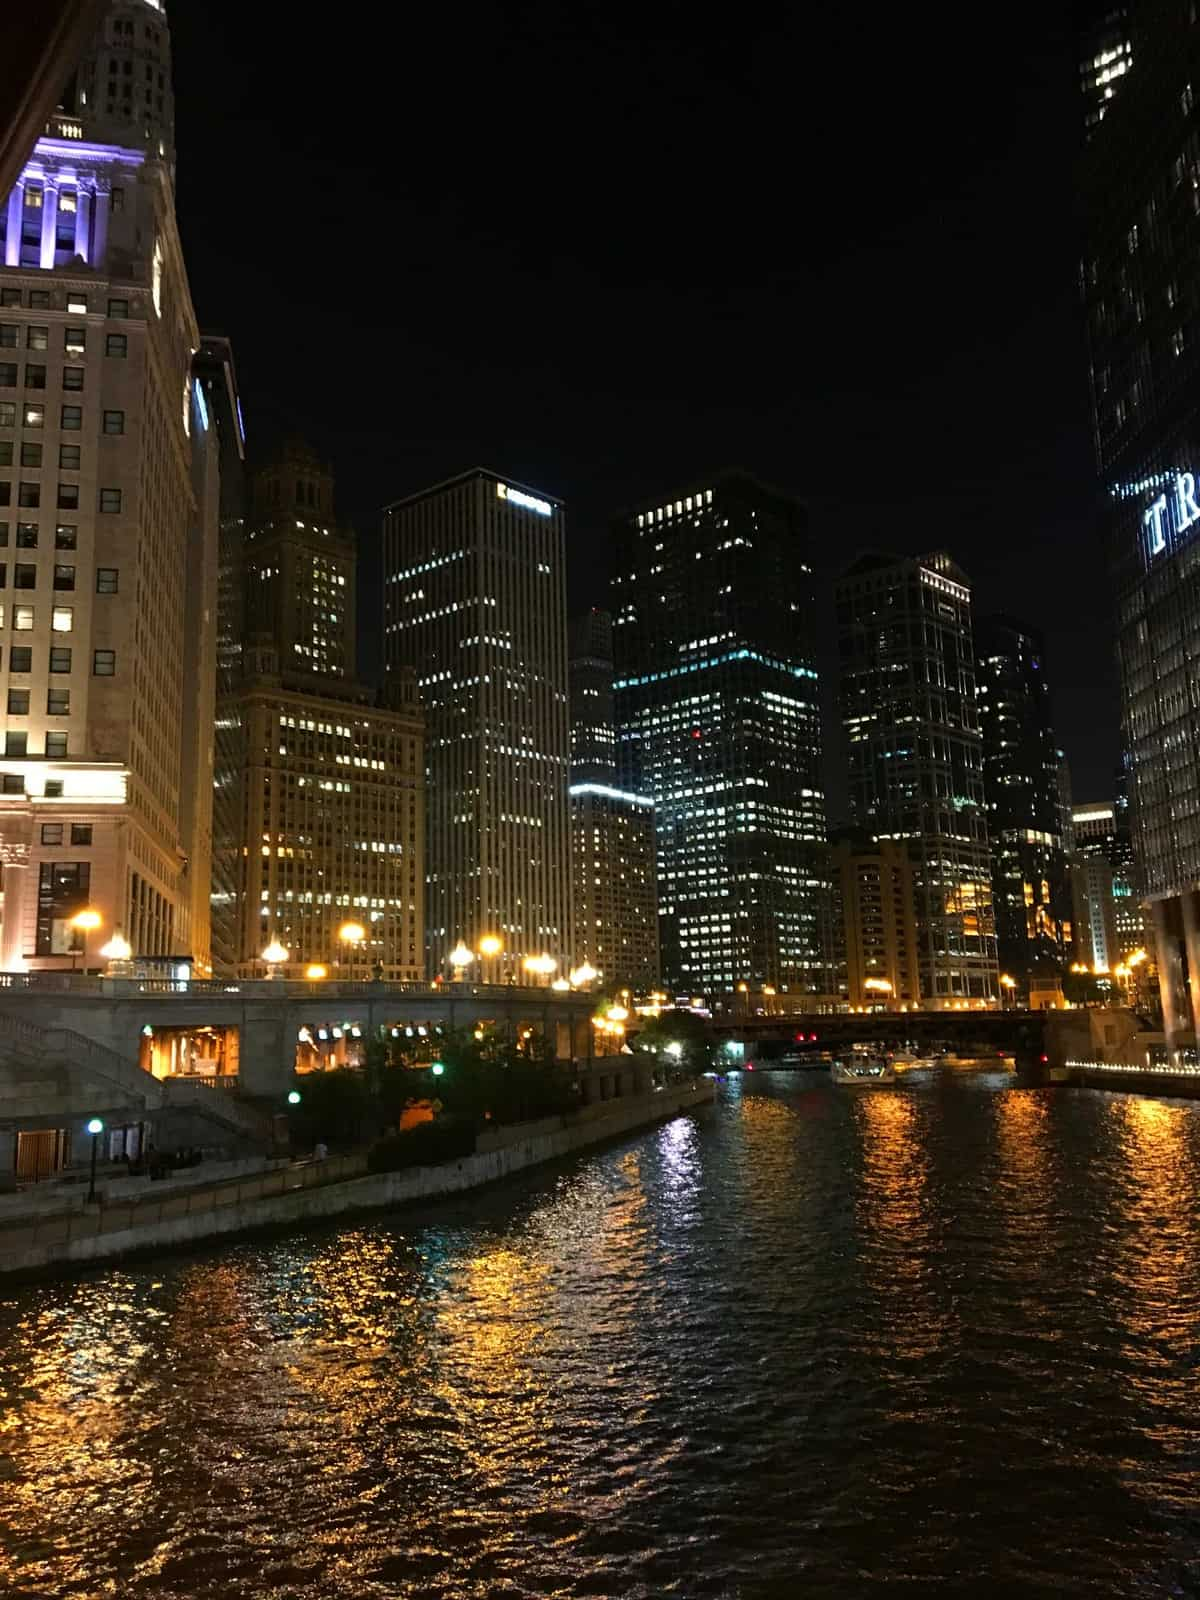 The chicago skyline over the Chicago river